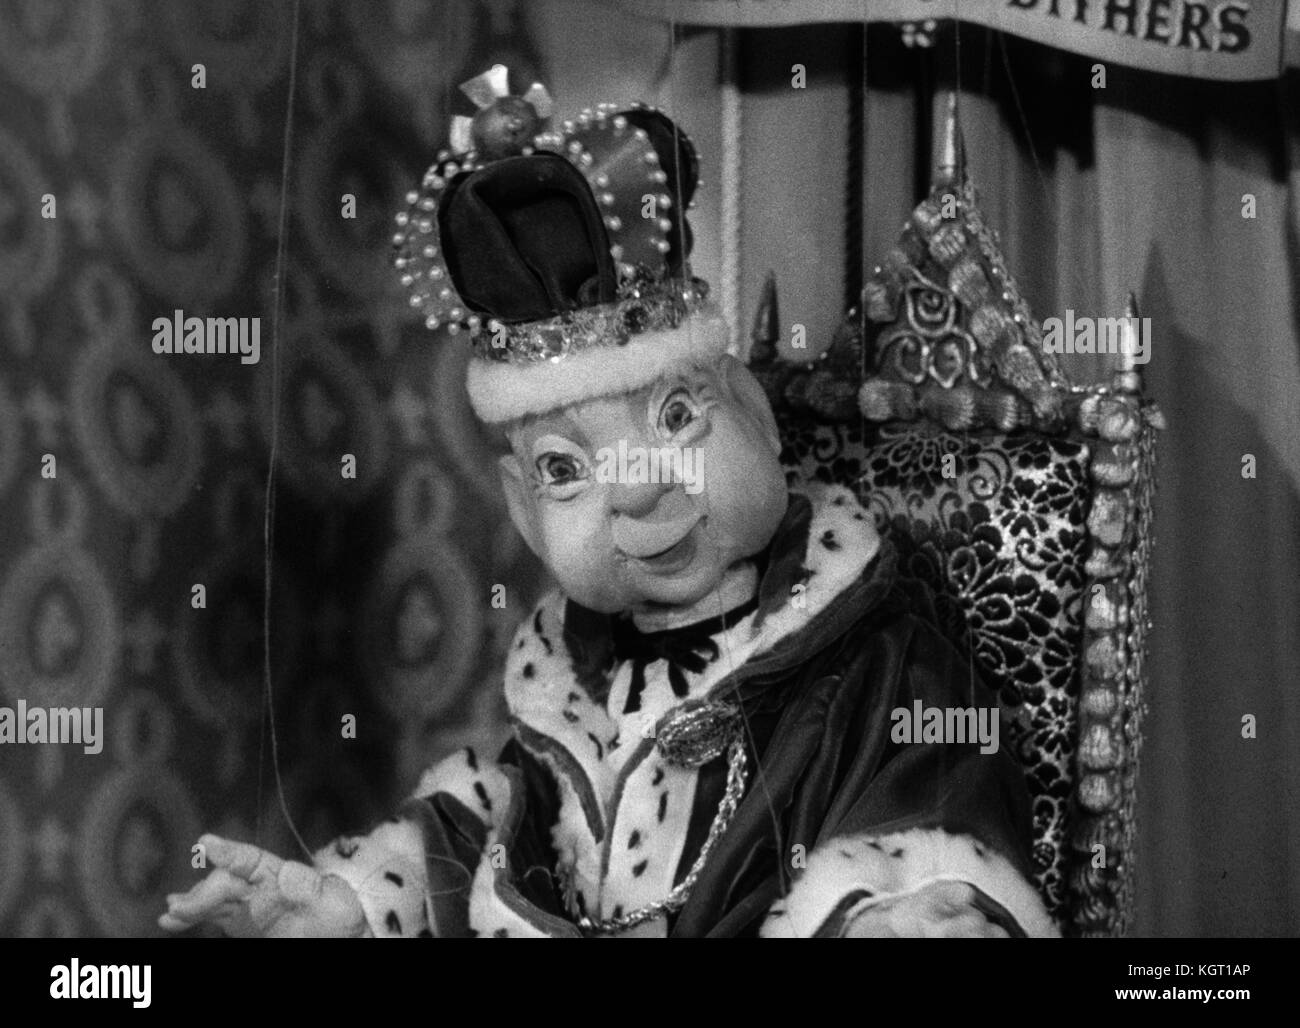 Torchy the Battery Boy (1957) TV series , Series One, Episode Eighteen, The Hungry Money Box     Date: 1957 - Stock Image